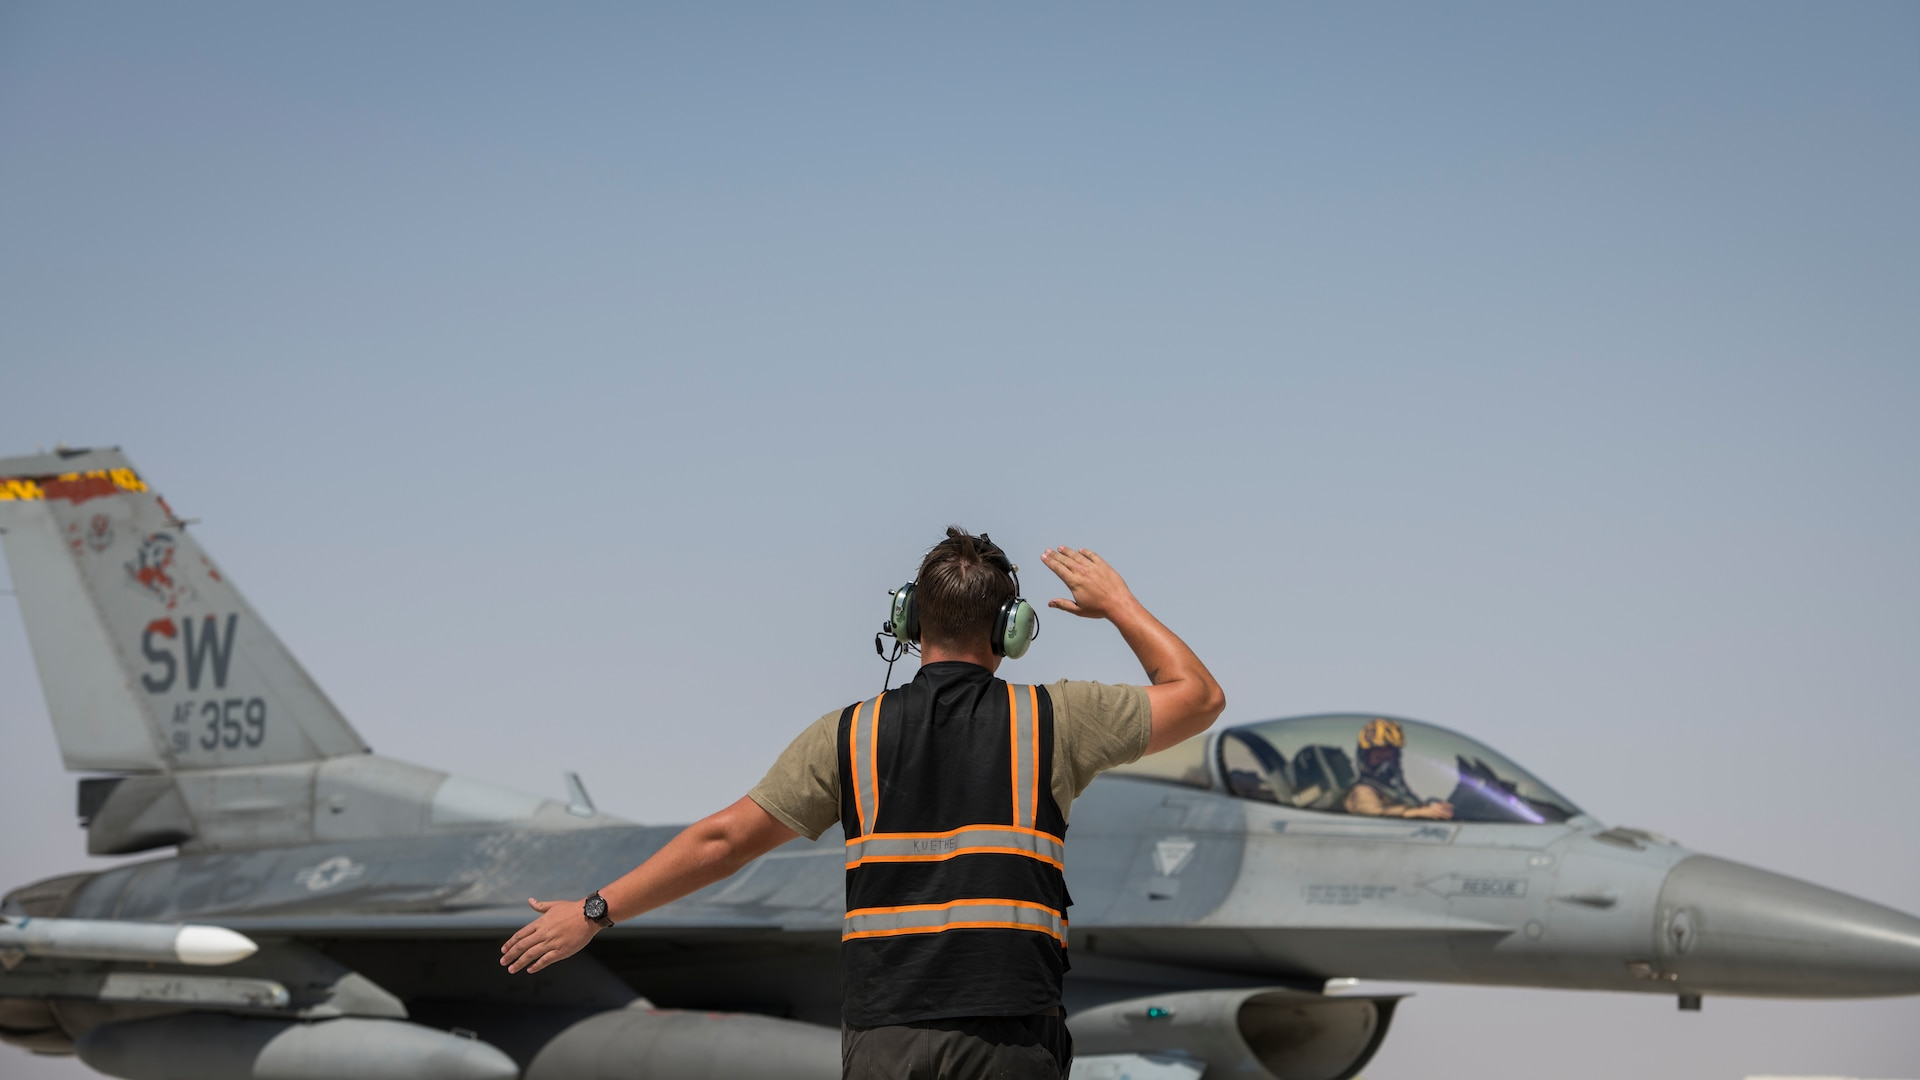 """U.S Air Force Senior Airman Steven Kuethe, a crew chief with the 380th Expeditionary Aircraft Maintenance Squadron marshals a U.S. Air Force F-16 """"Viper"""" Fighting Falcon assigned to the 79th Expeditionary Fighter Squadron at an undisclosed location in the U.S. Central Command area of responsibility, Feb. 14, 2020."""